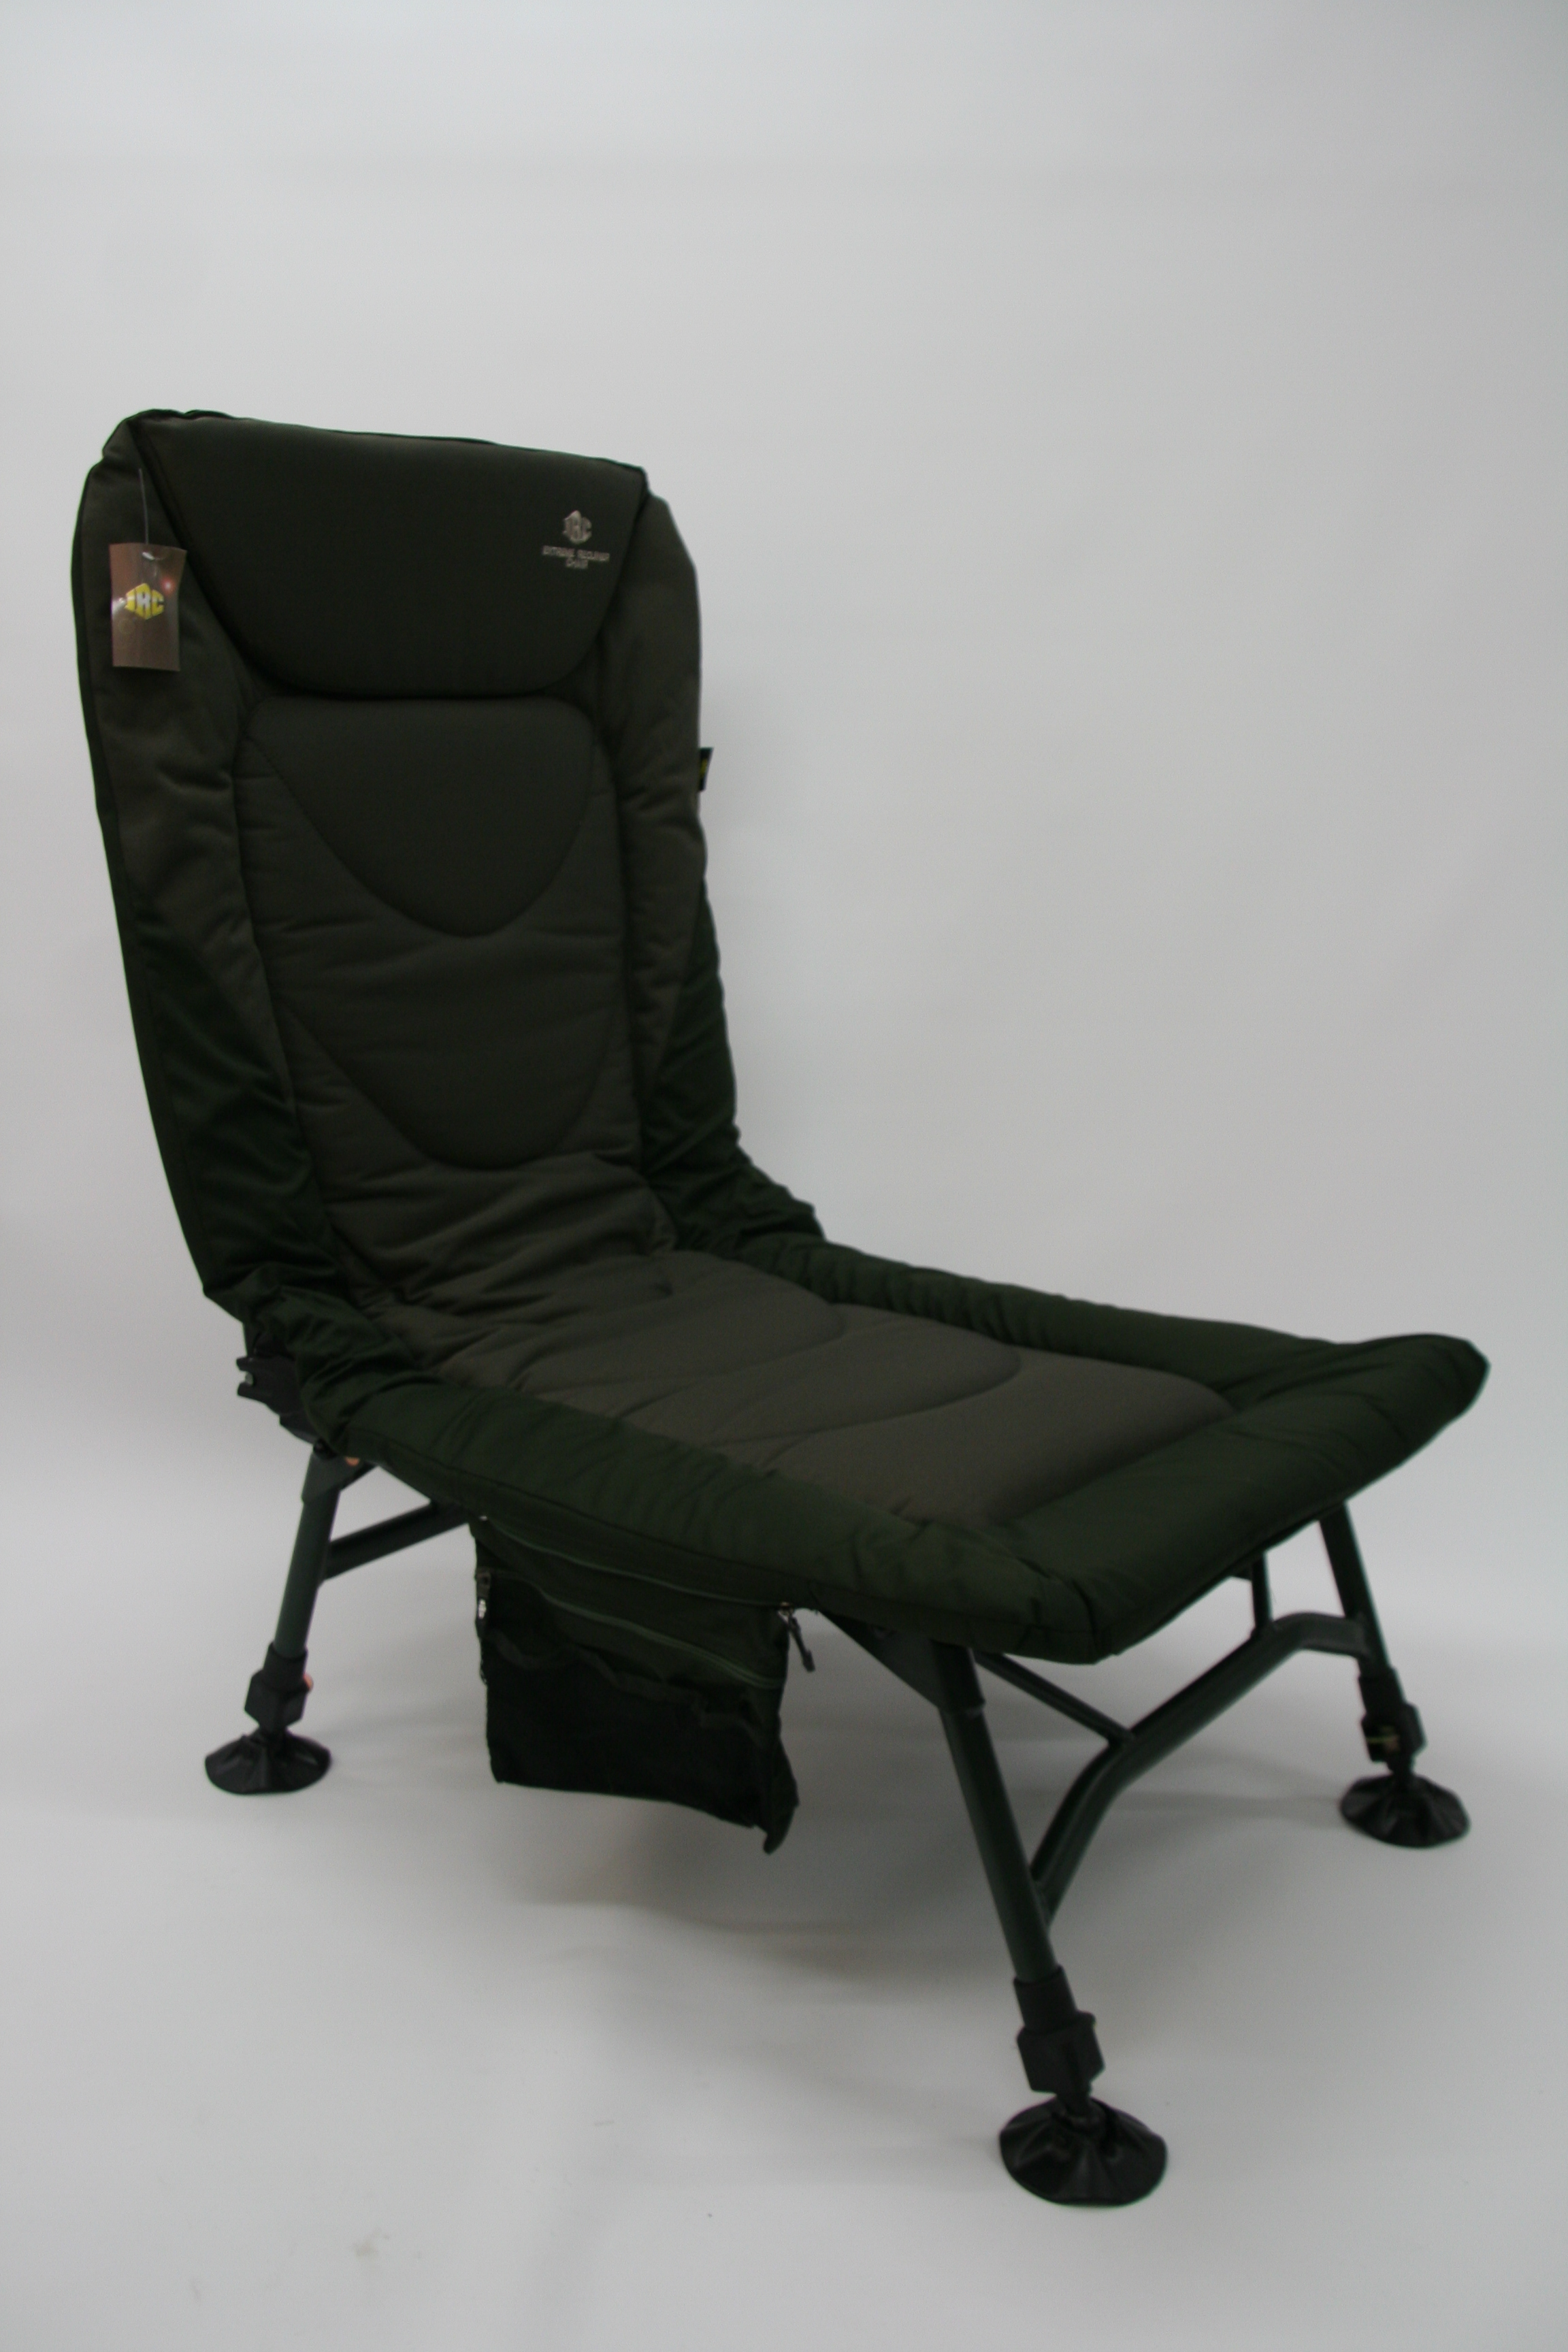 Astonishing Jrc Extreme Recliner Chair Stoel 20 Korting Op Hengelspullen Pabps2019 Chair Design Images Pabps2019Com